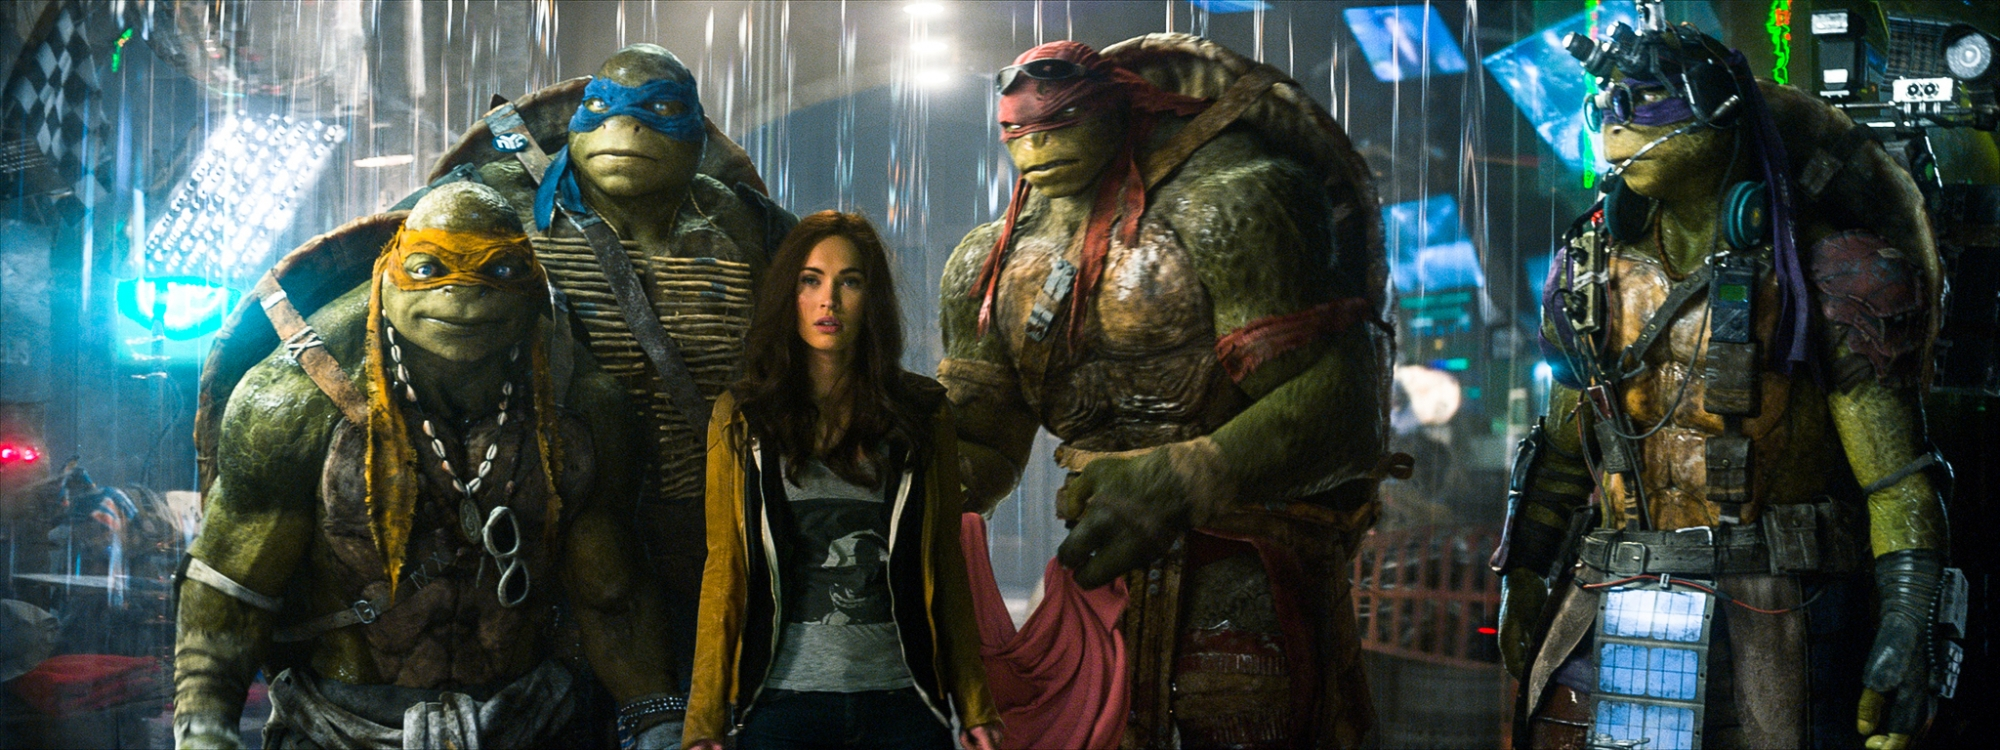 Megan-Fox-in-Teenage-Mutant-Ninja-Turtles